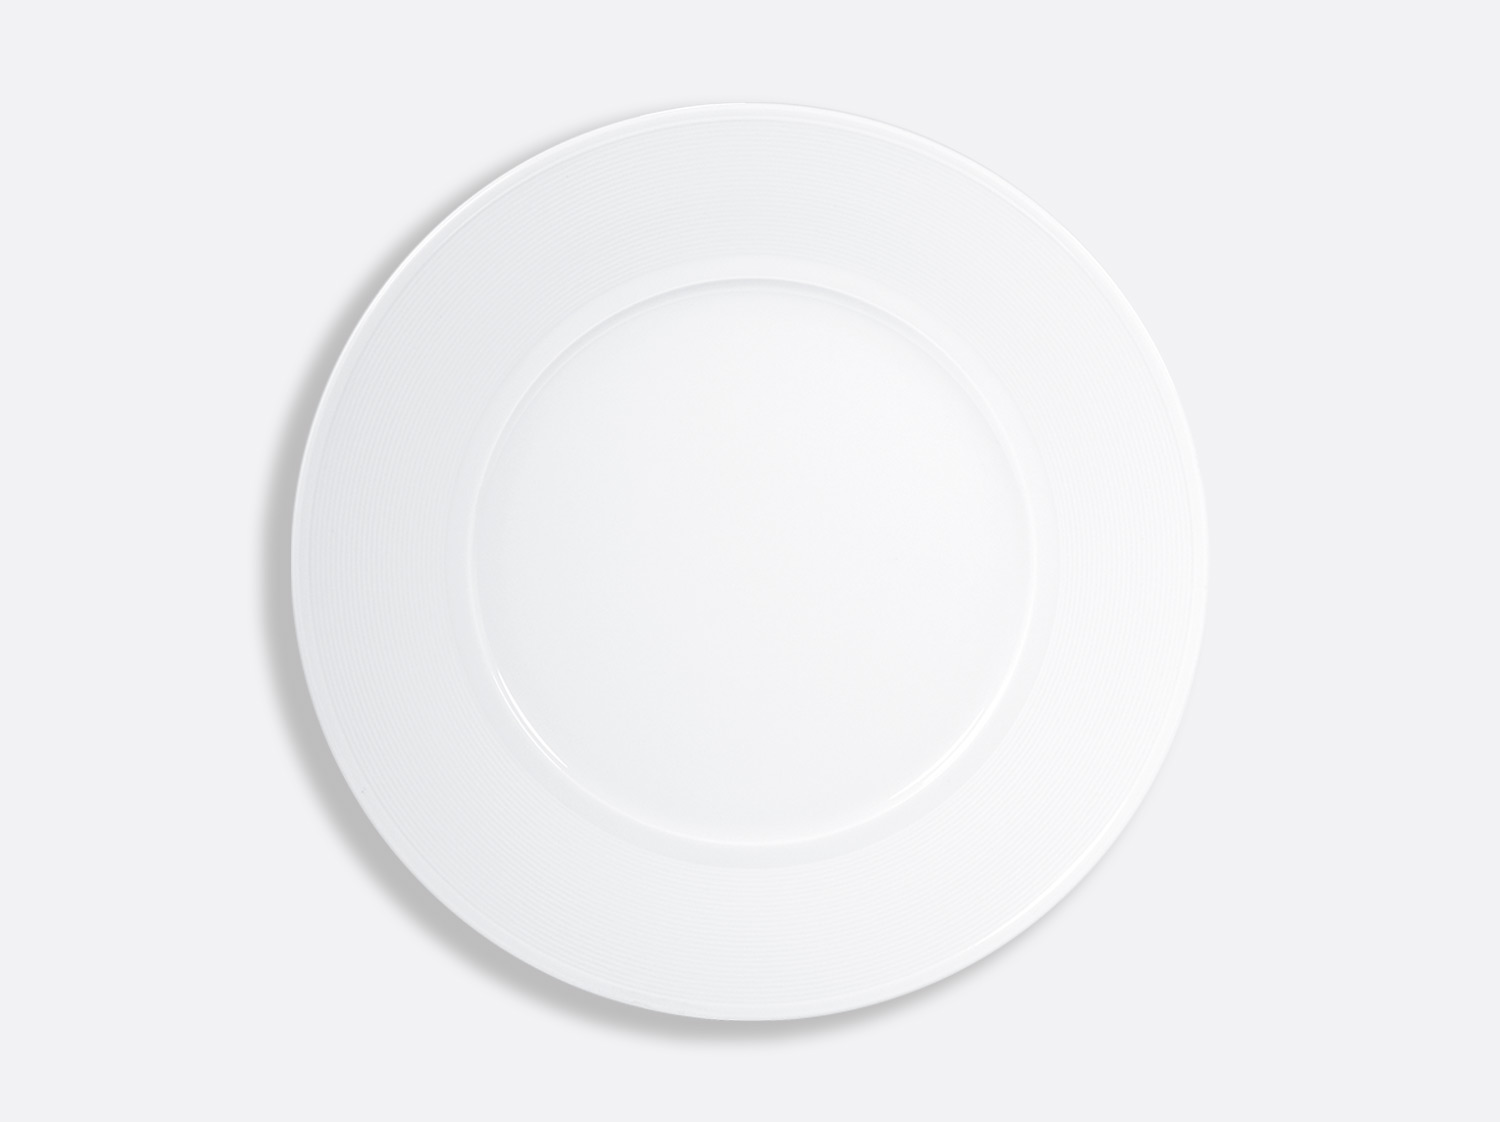 China Plate 29.5 cm of the collection Atlantide blanc | Bernardaud